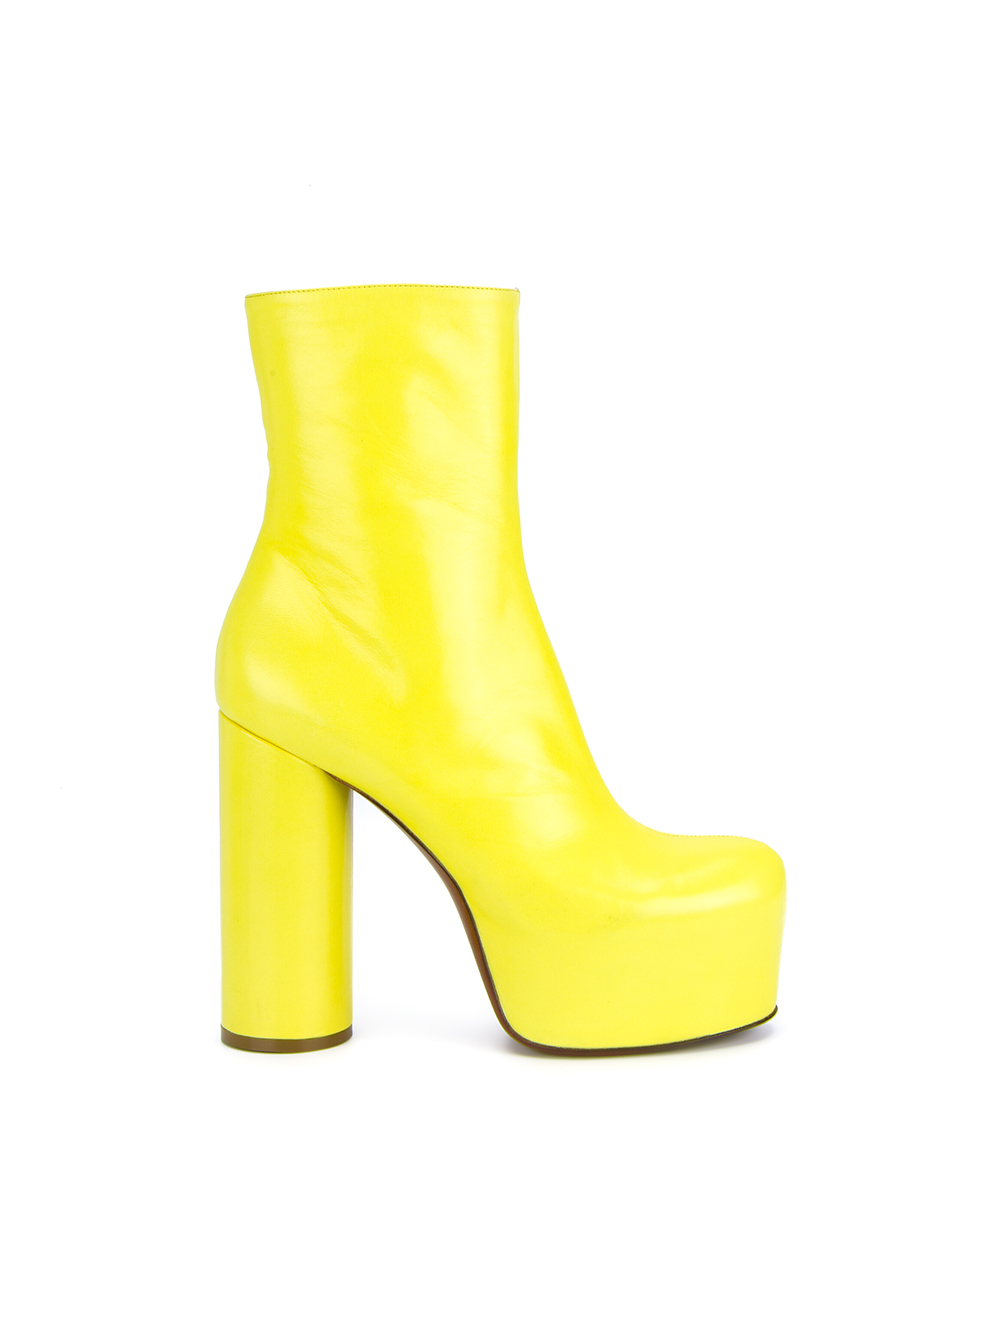 Vetements Leather Platform Ankle Boots in Yellow | Lyst